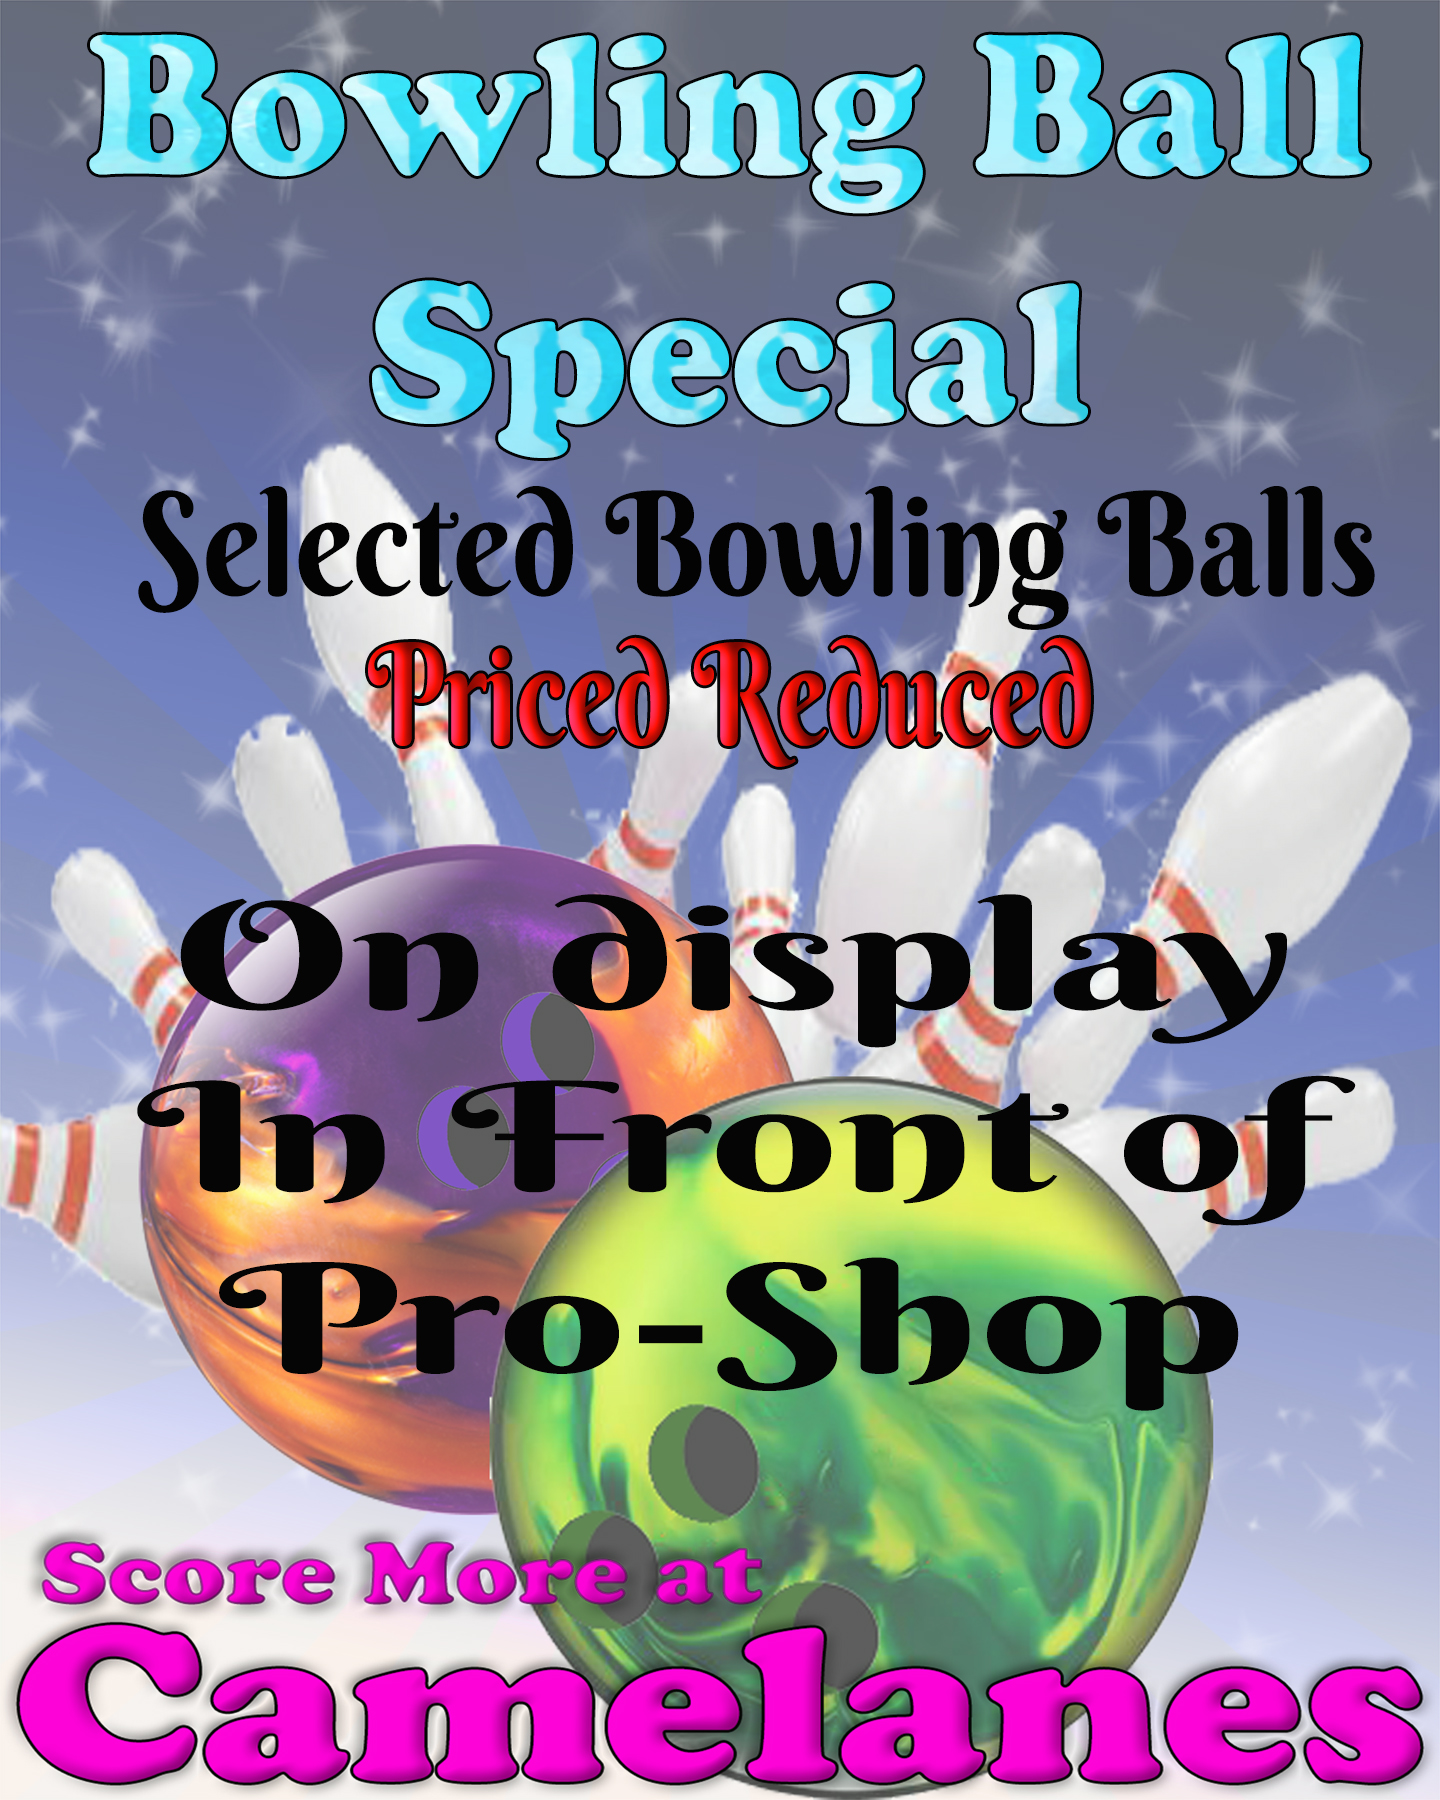 Camelanes Bowling Center Ball Sale